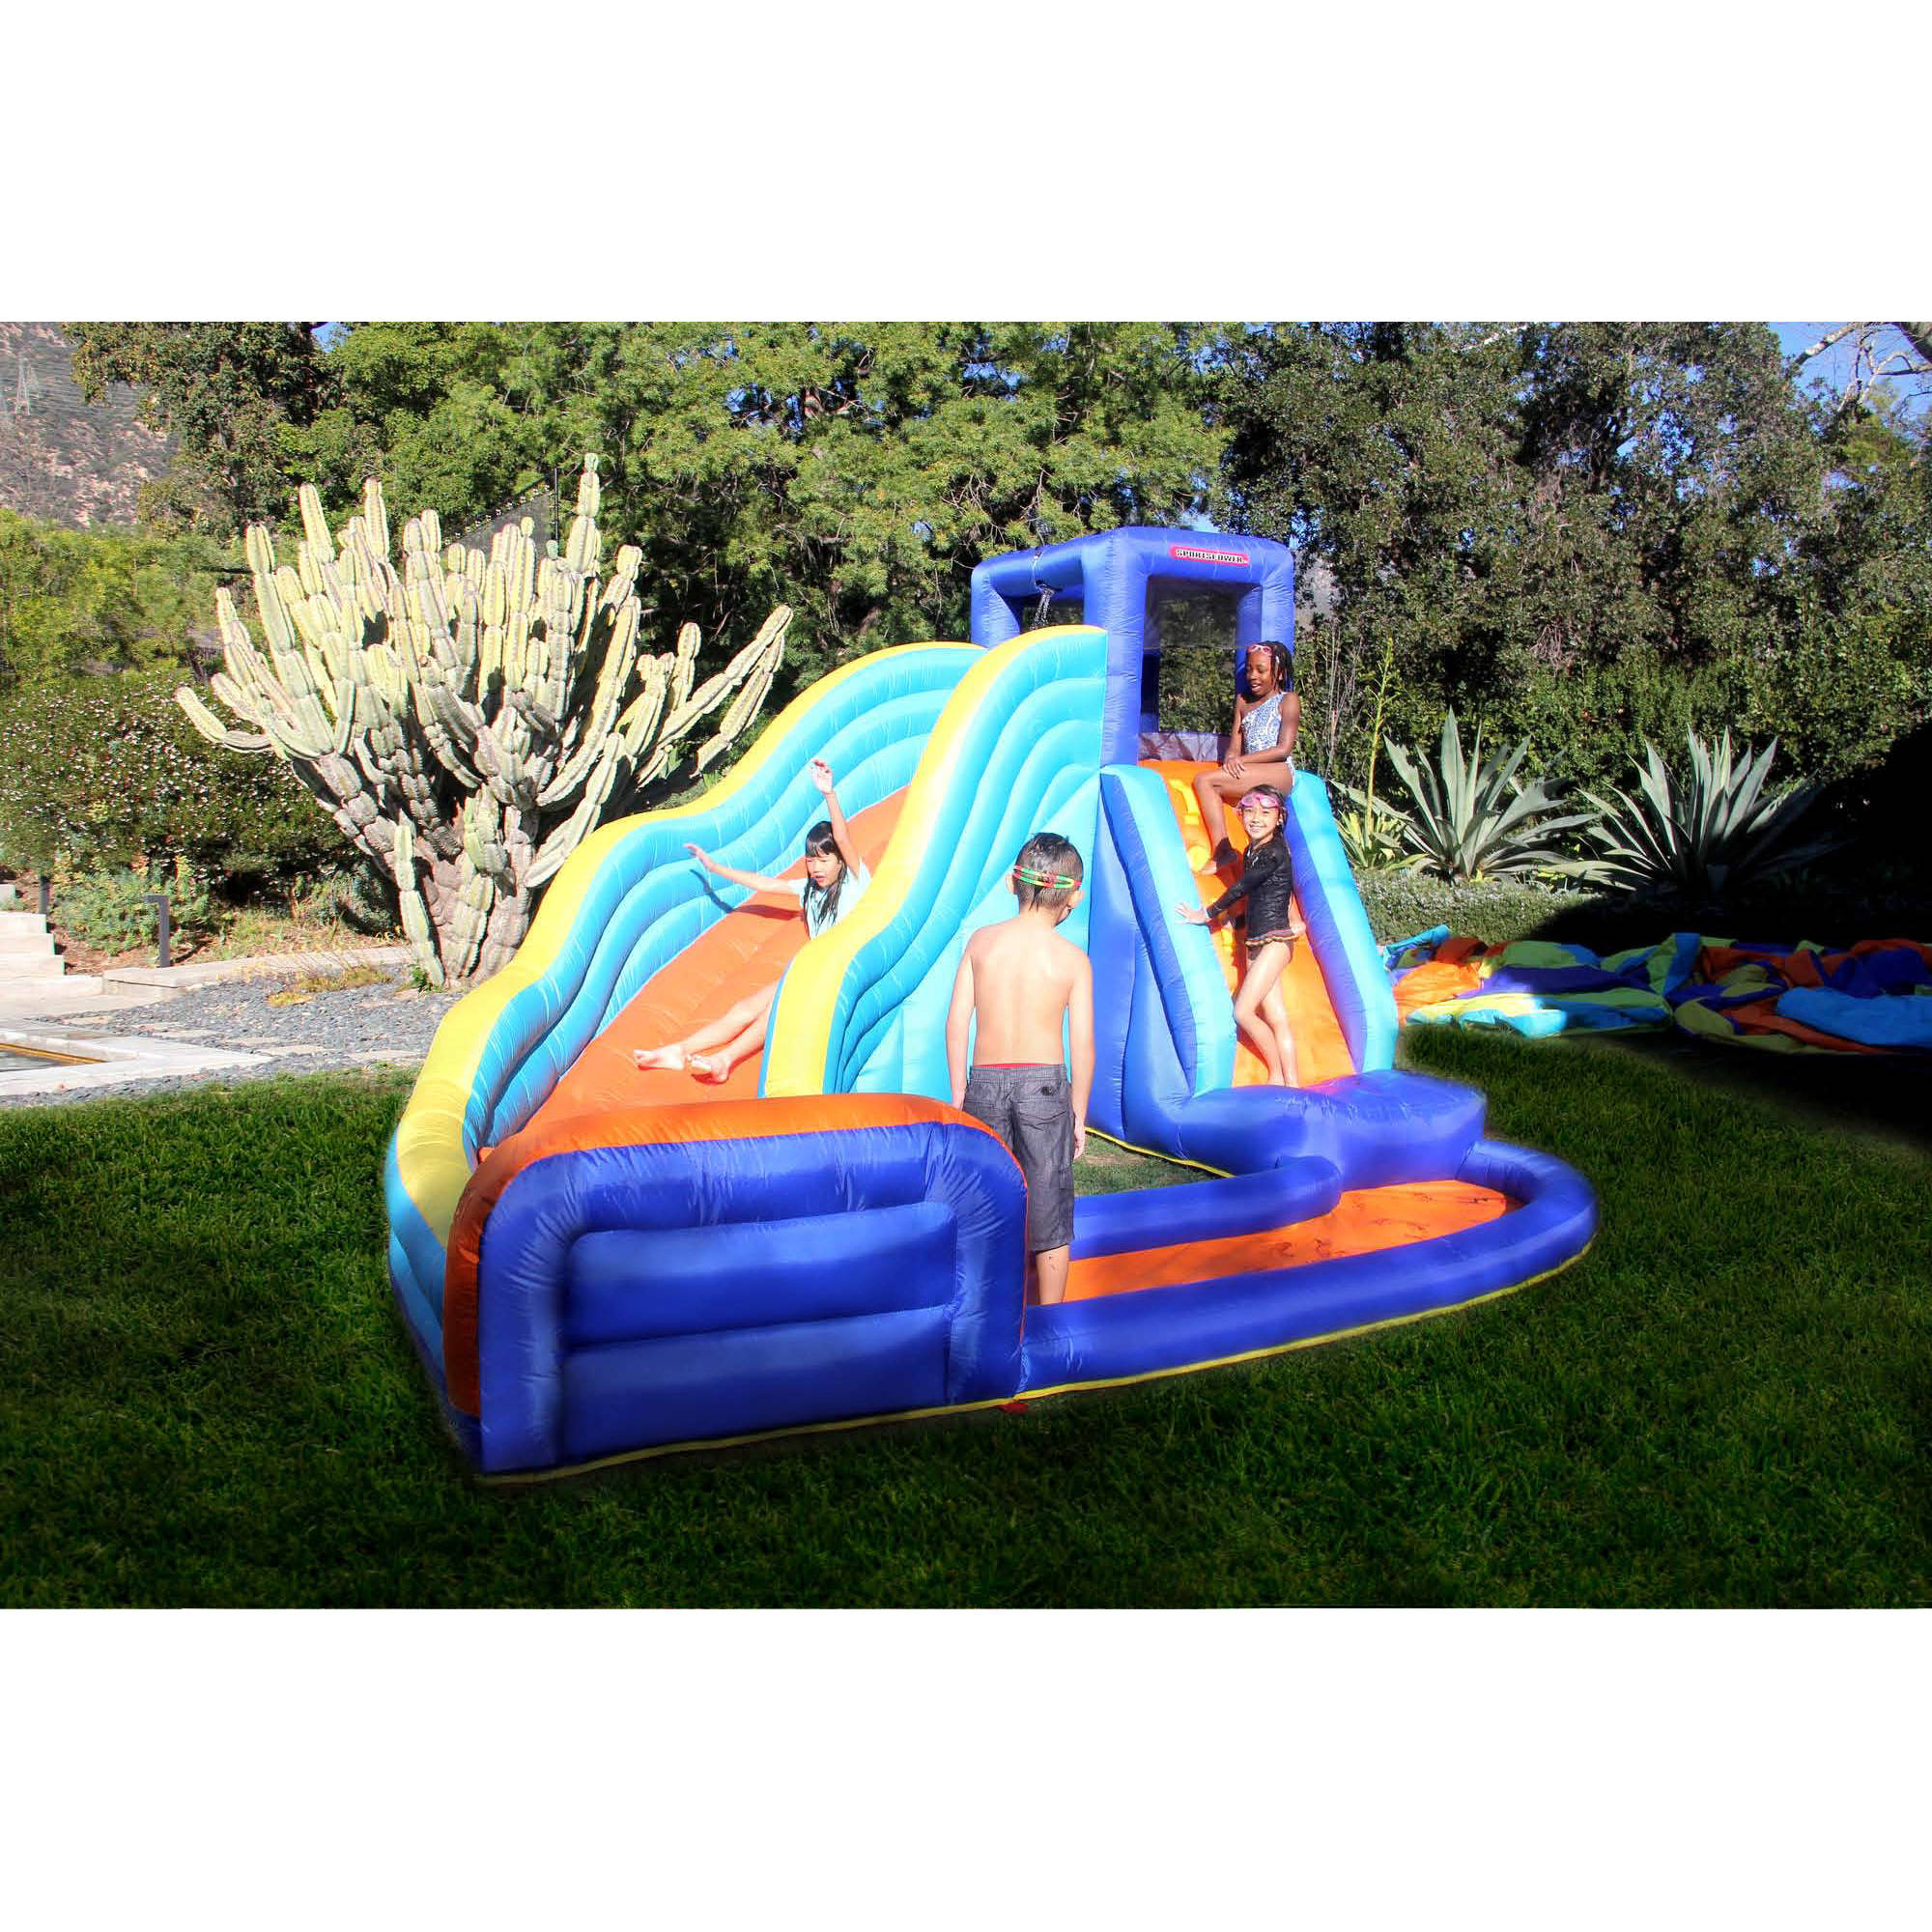 Sportspower Outdoor Big Wave Inflatable Water Slide